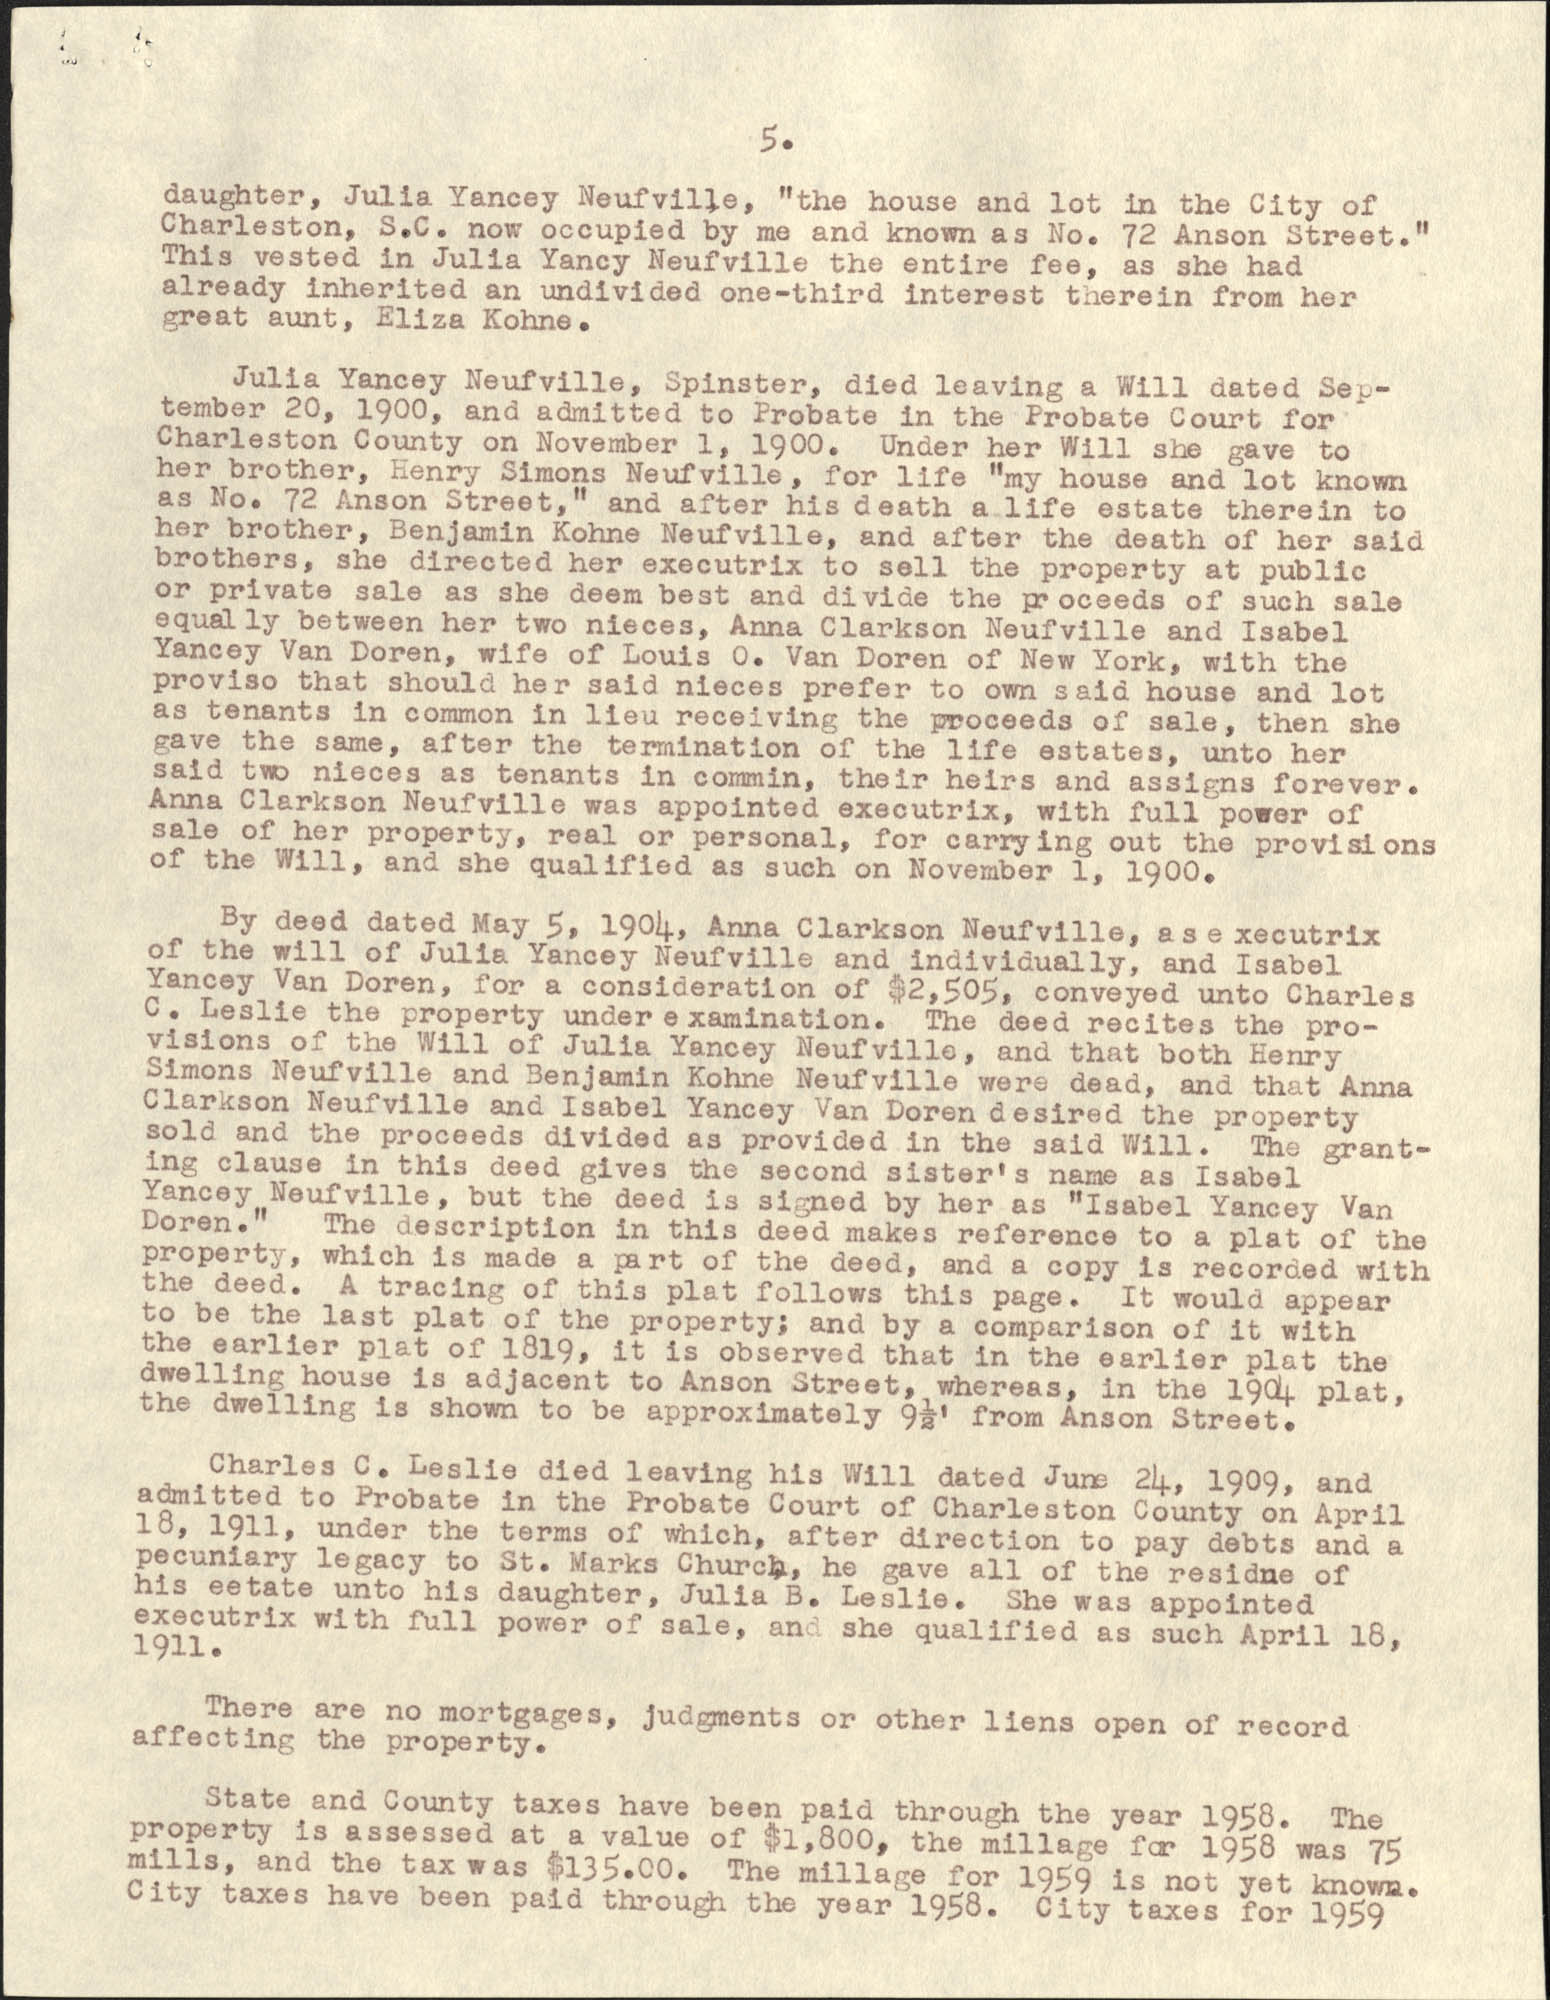 Letter from S. Henry Edmunds to Ben Scott Whaley, May 6, 1959, Page 5